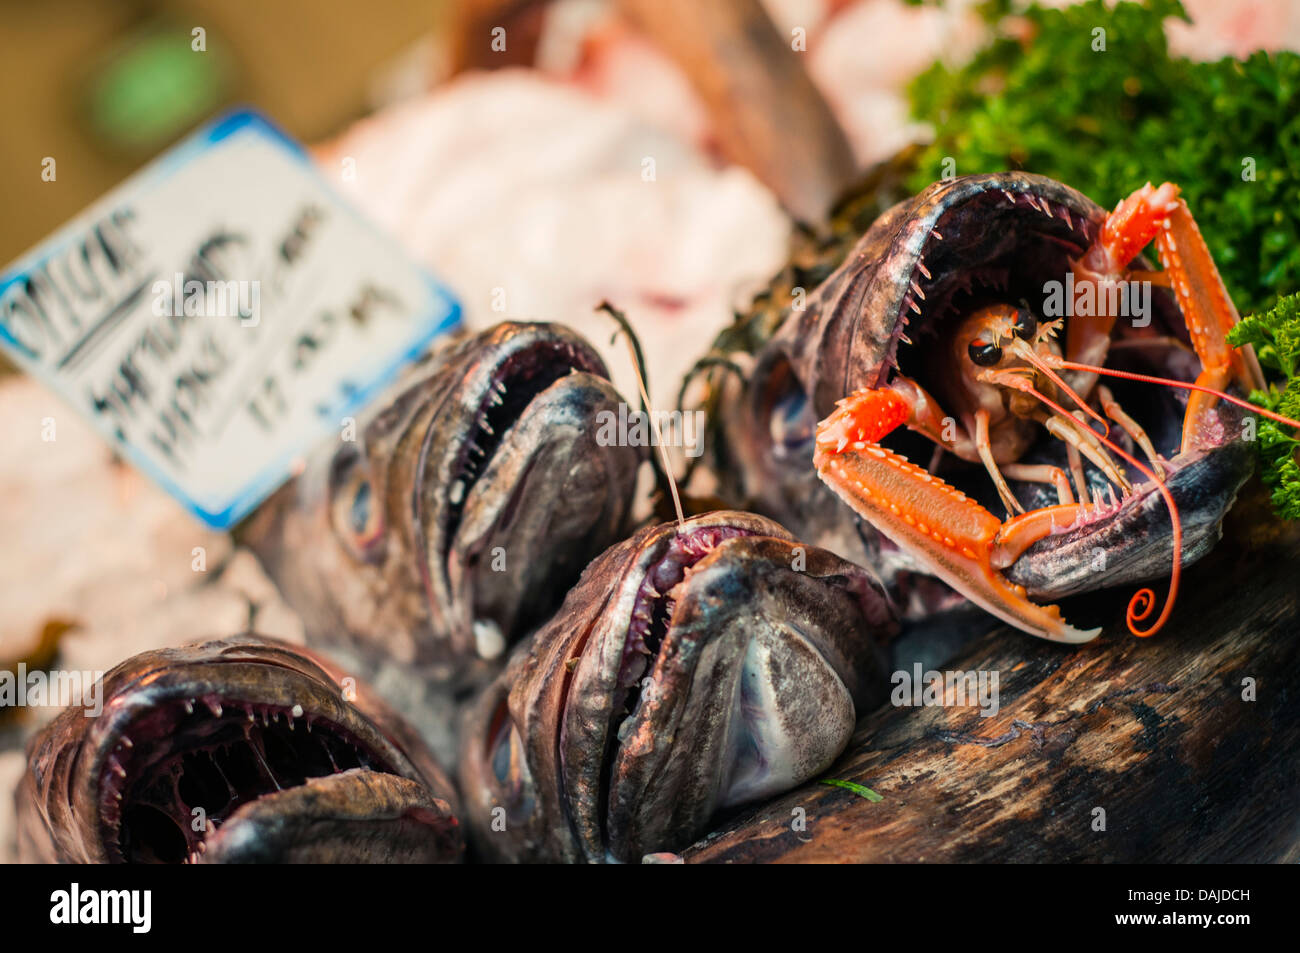 Hake fish on display in Borough Market, London - Stock Image